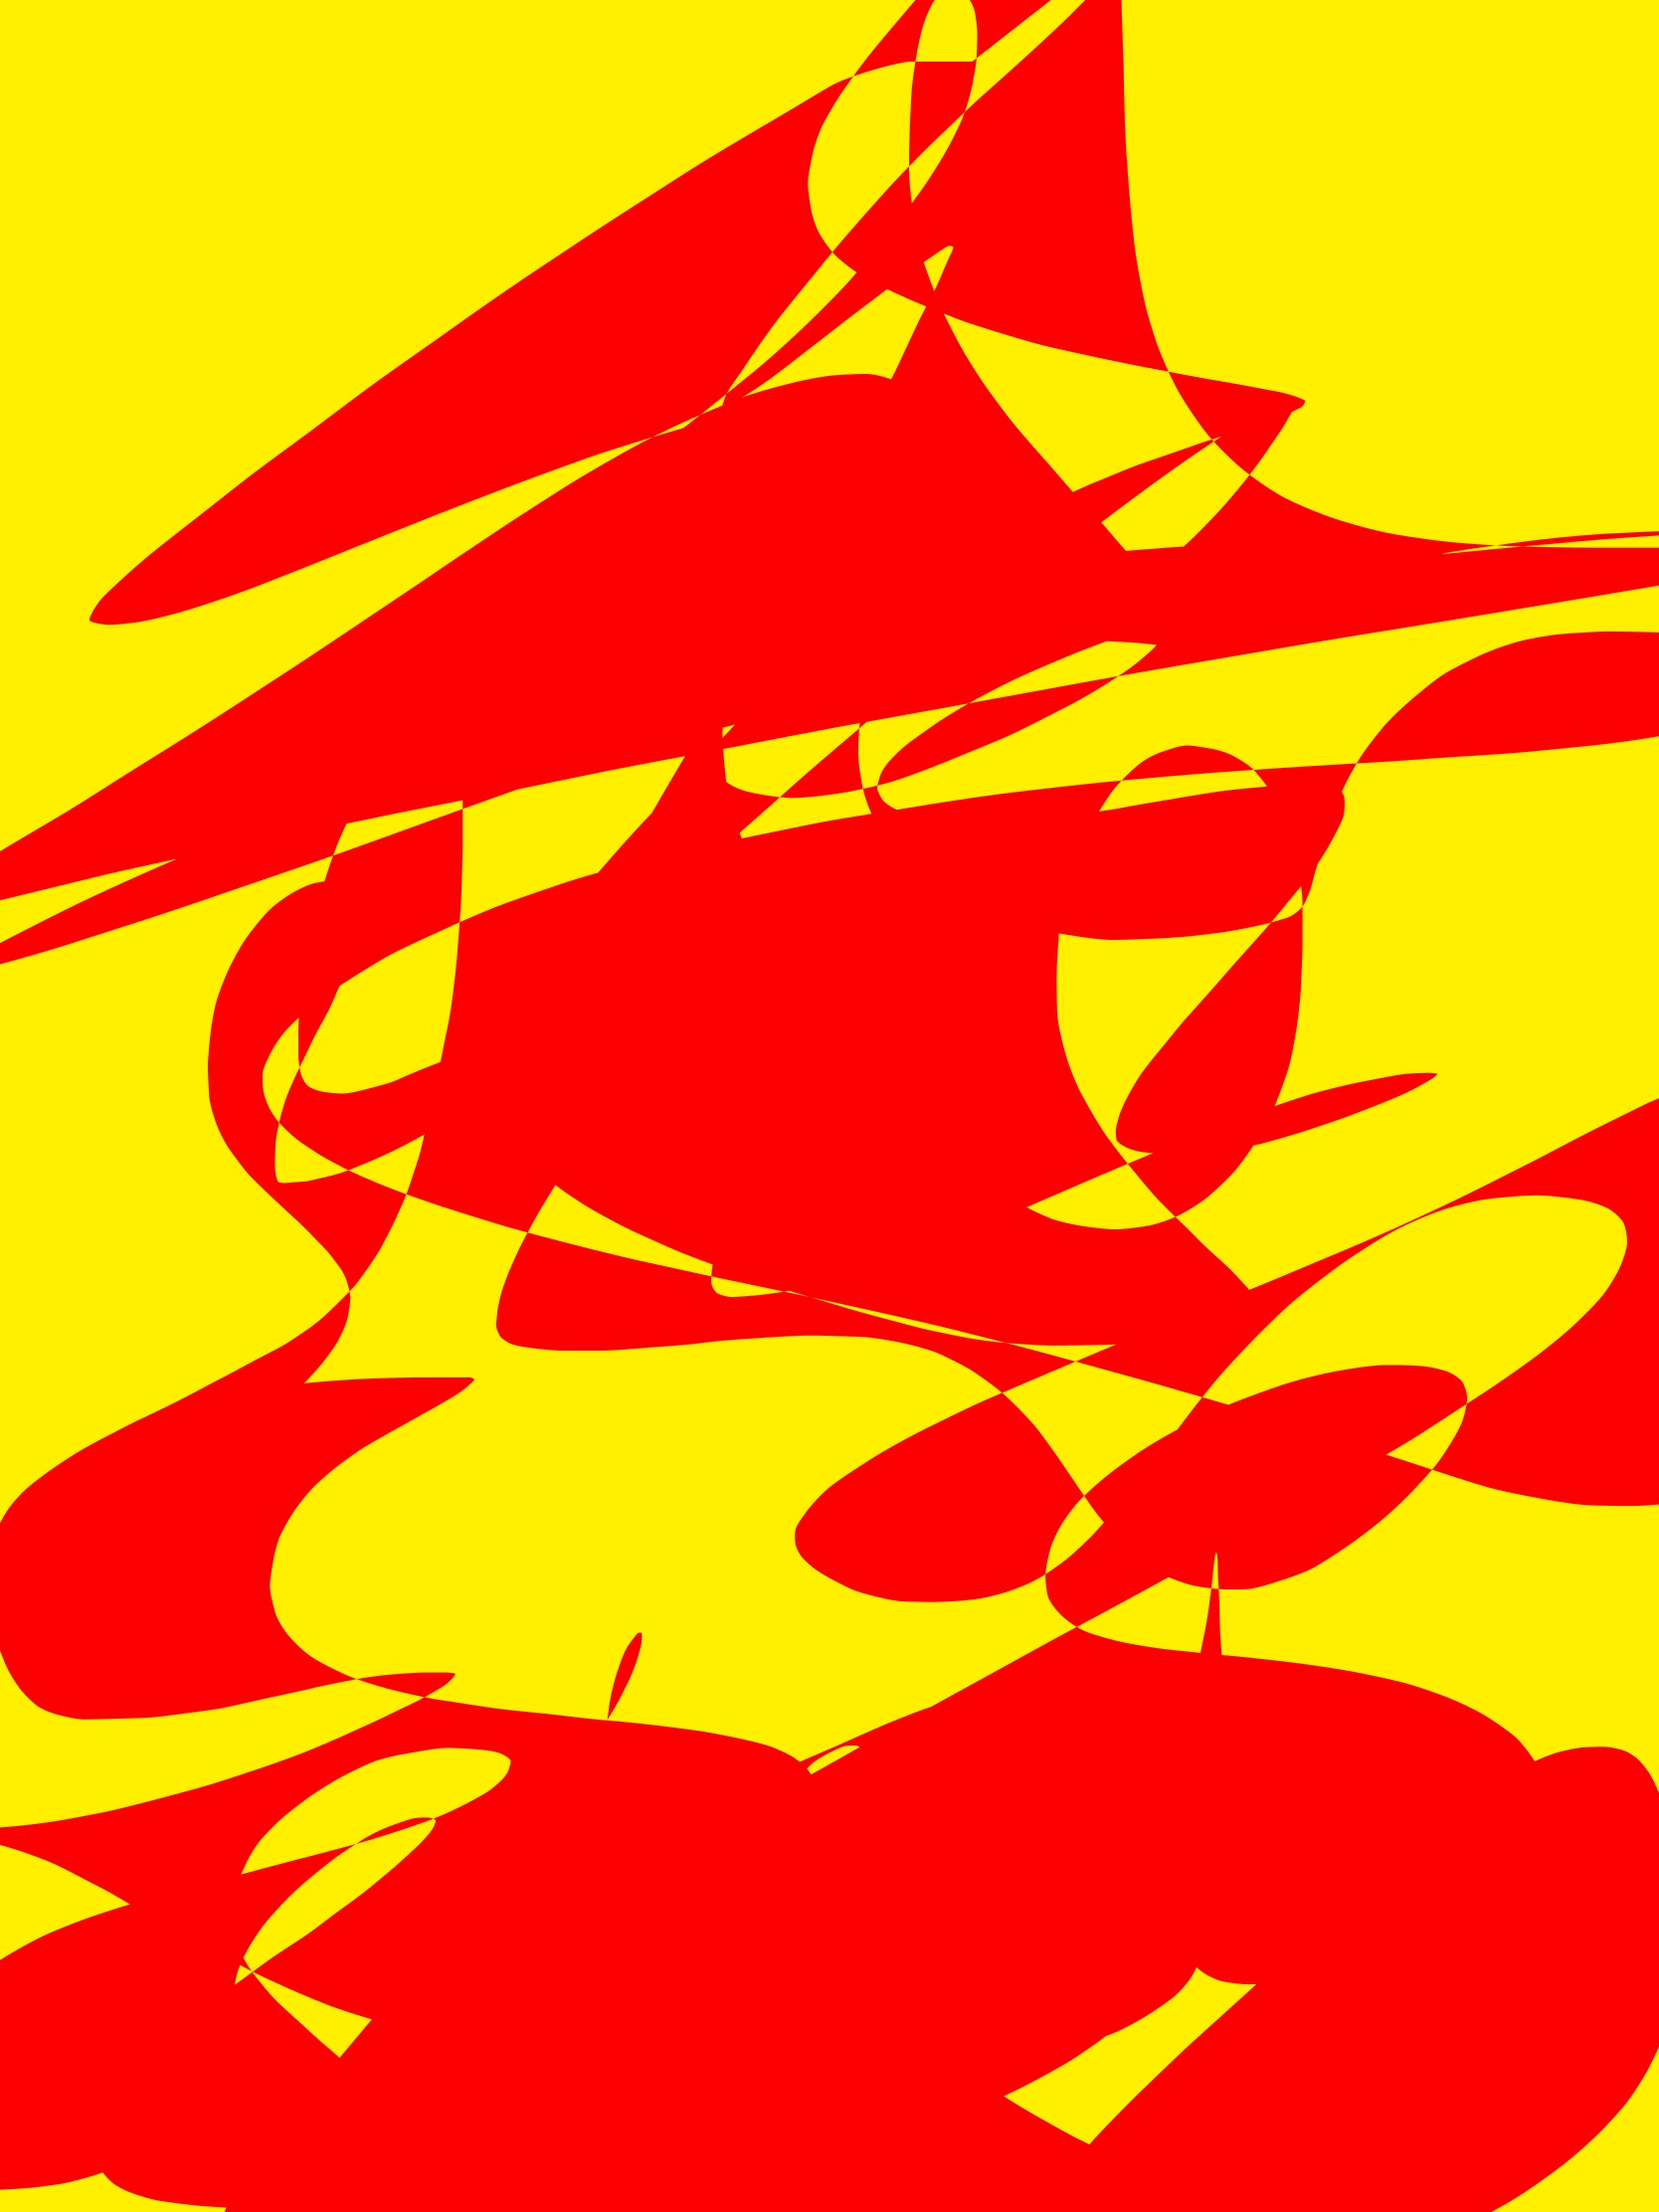 Red yellow abstract ERIC KIM